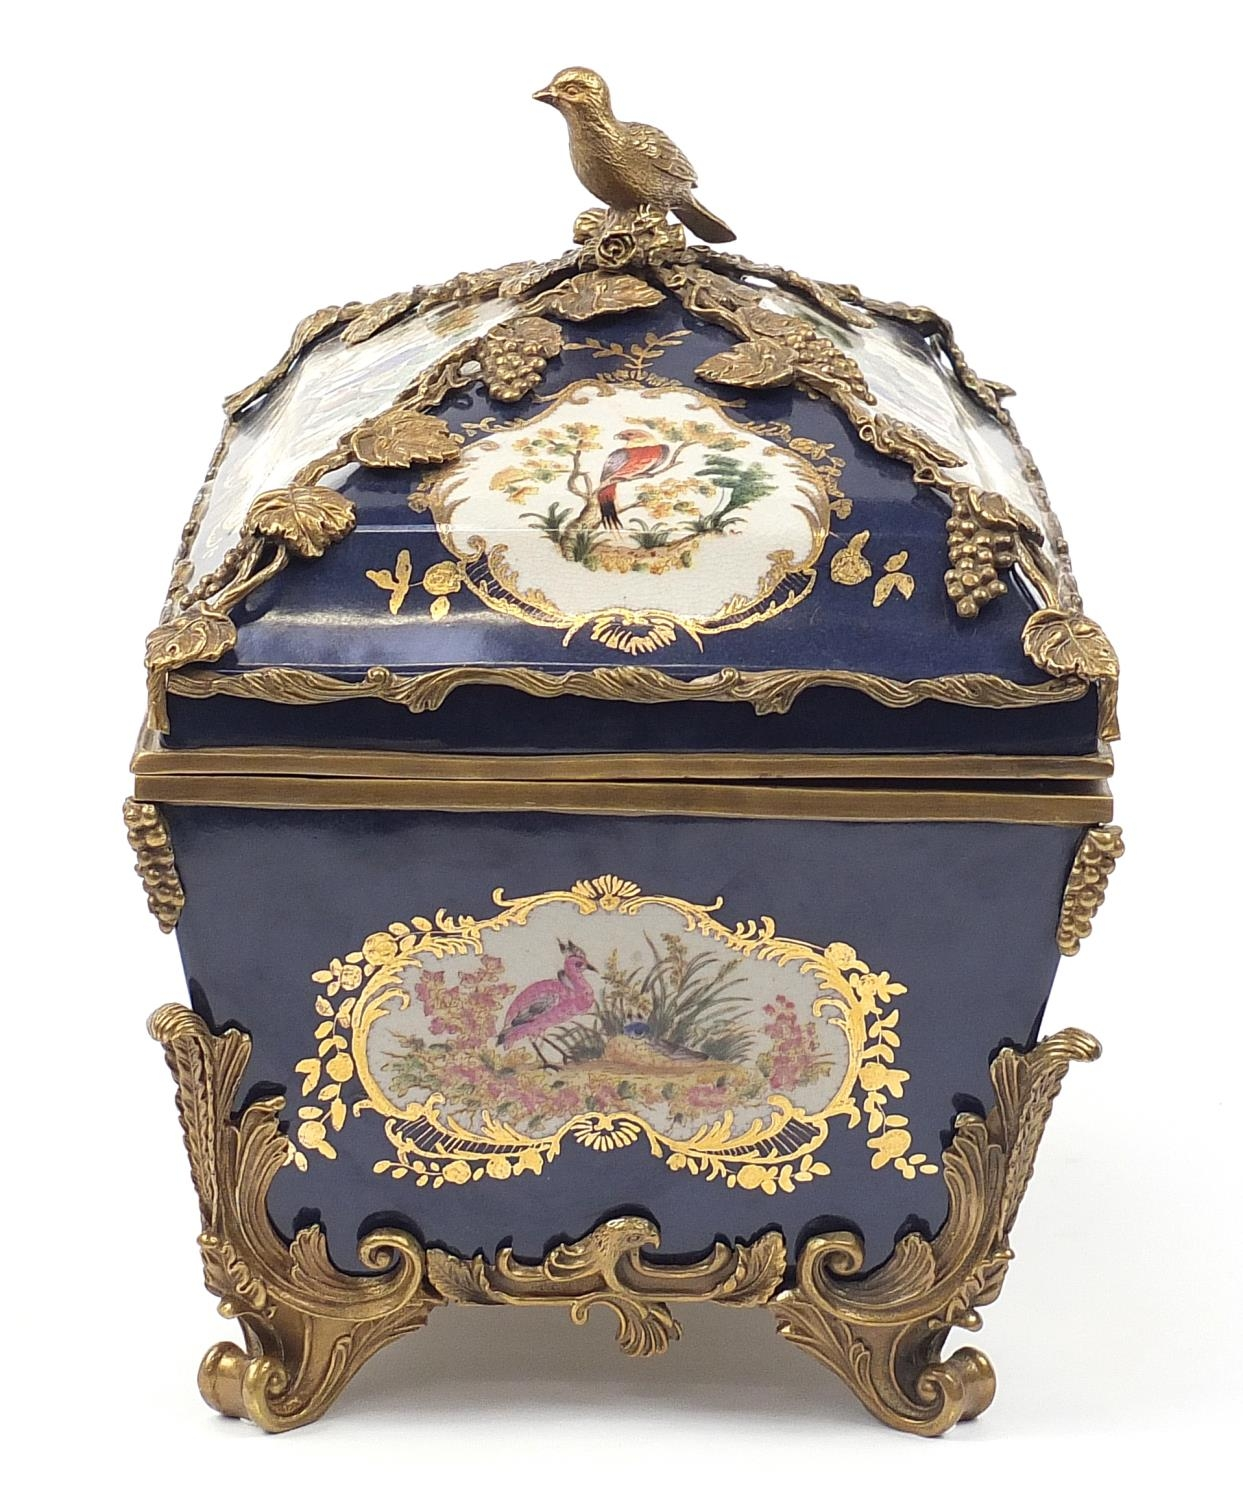 Continental bronze mounted porcelain table casket decorated with birds, leaves and berries, 35cm H x - Image 6 of 10